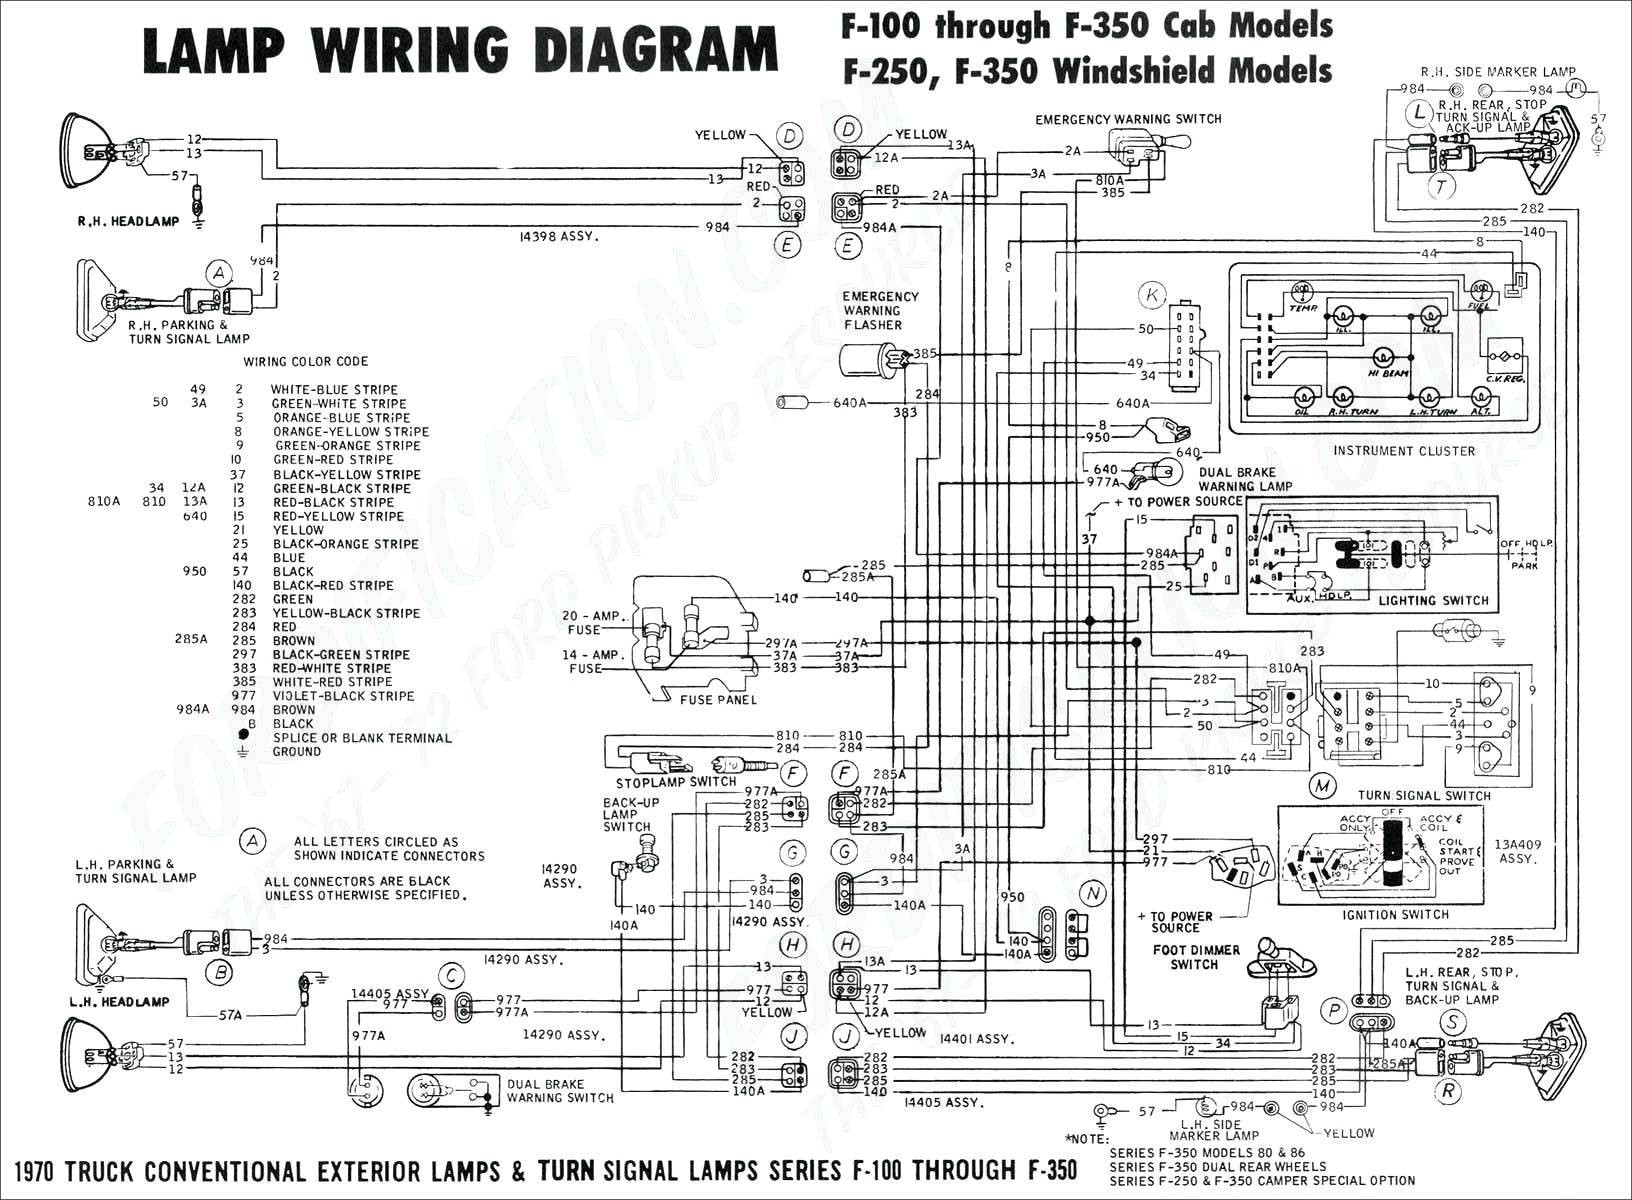 Truck Kenworth T800 Turn Signal Wiring Diagram Library International 4300 Schematics Rh Parntesis Co 2005 Dt466 Engine